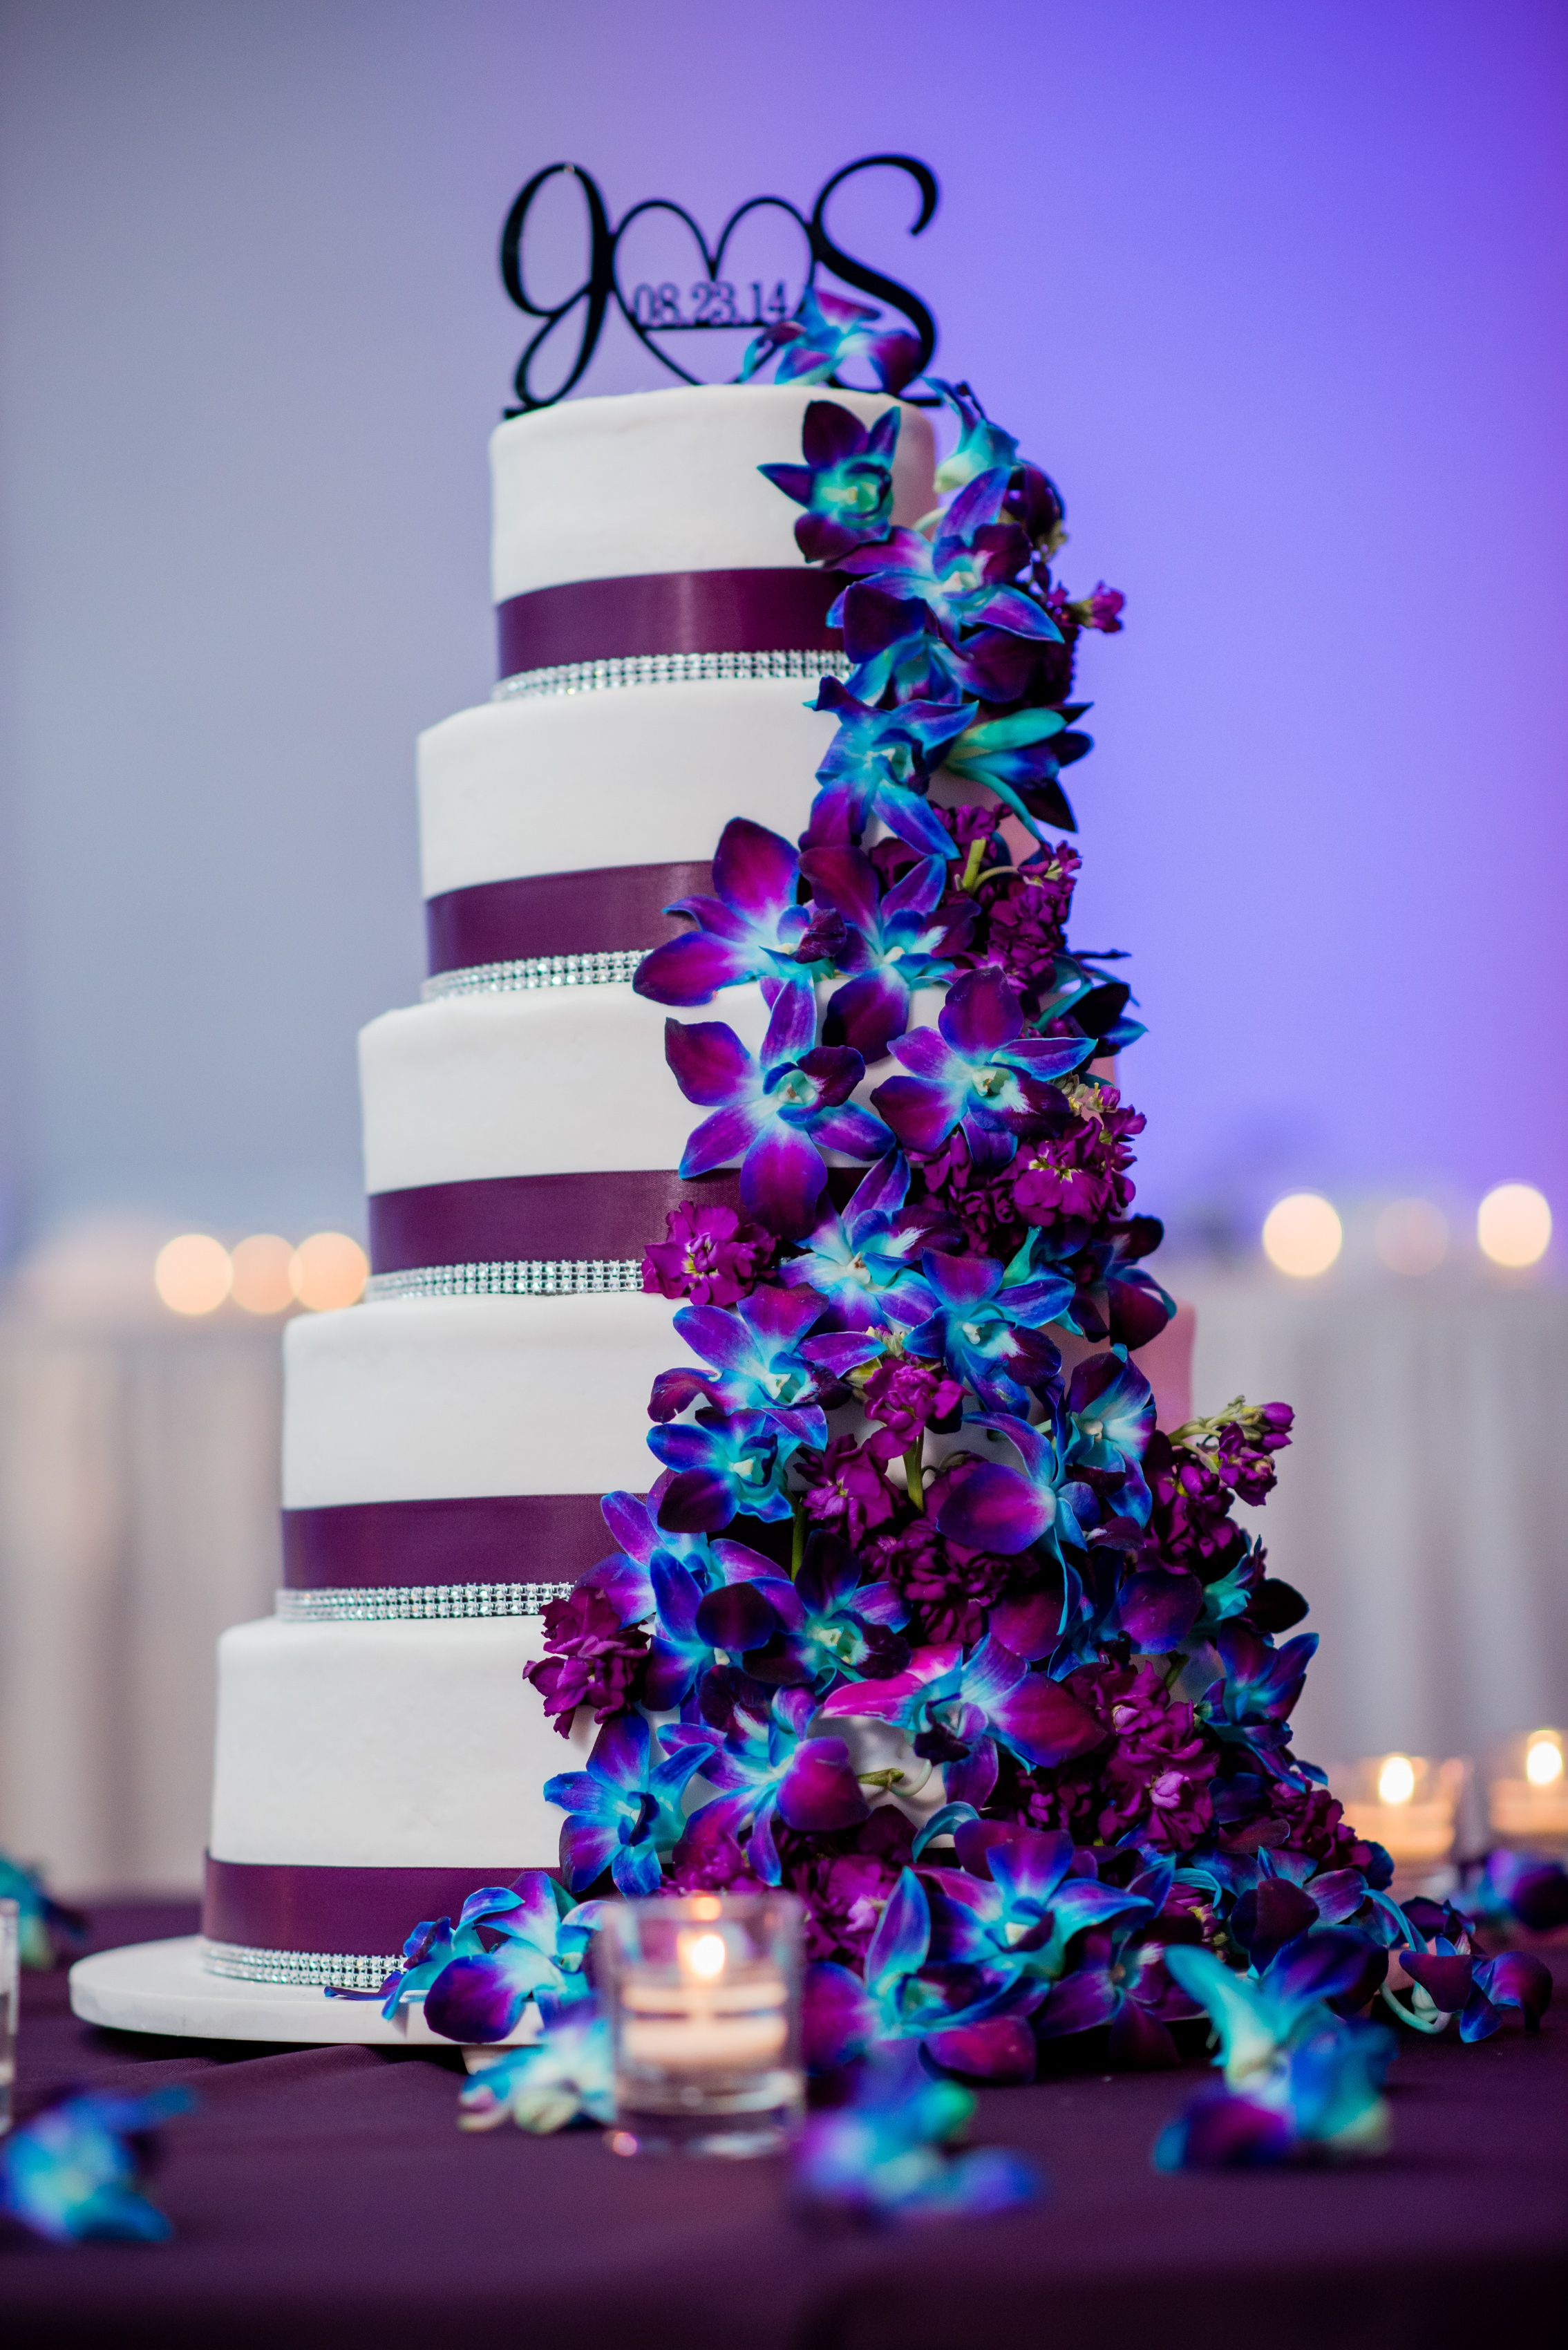 Our Wedding Cake Purple Plum Theme With Dendrobium Orchids Dyed Blue And A Few